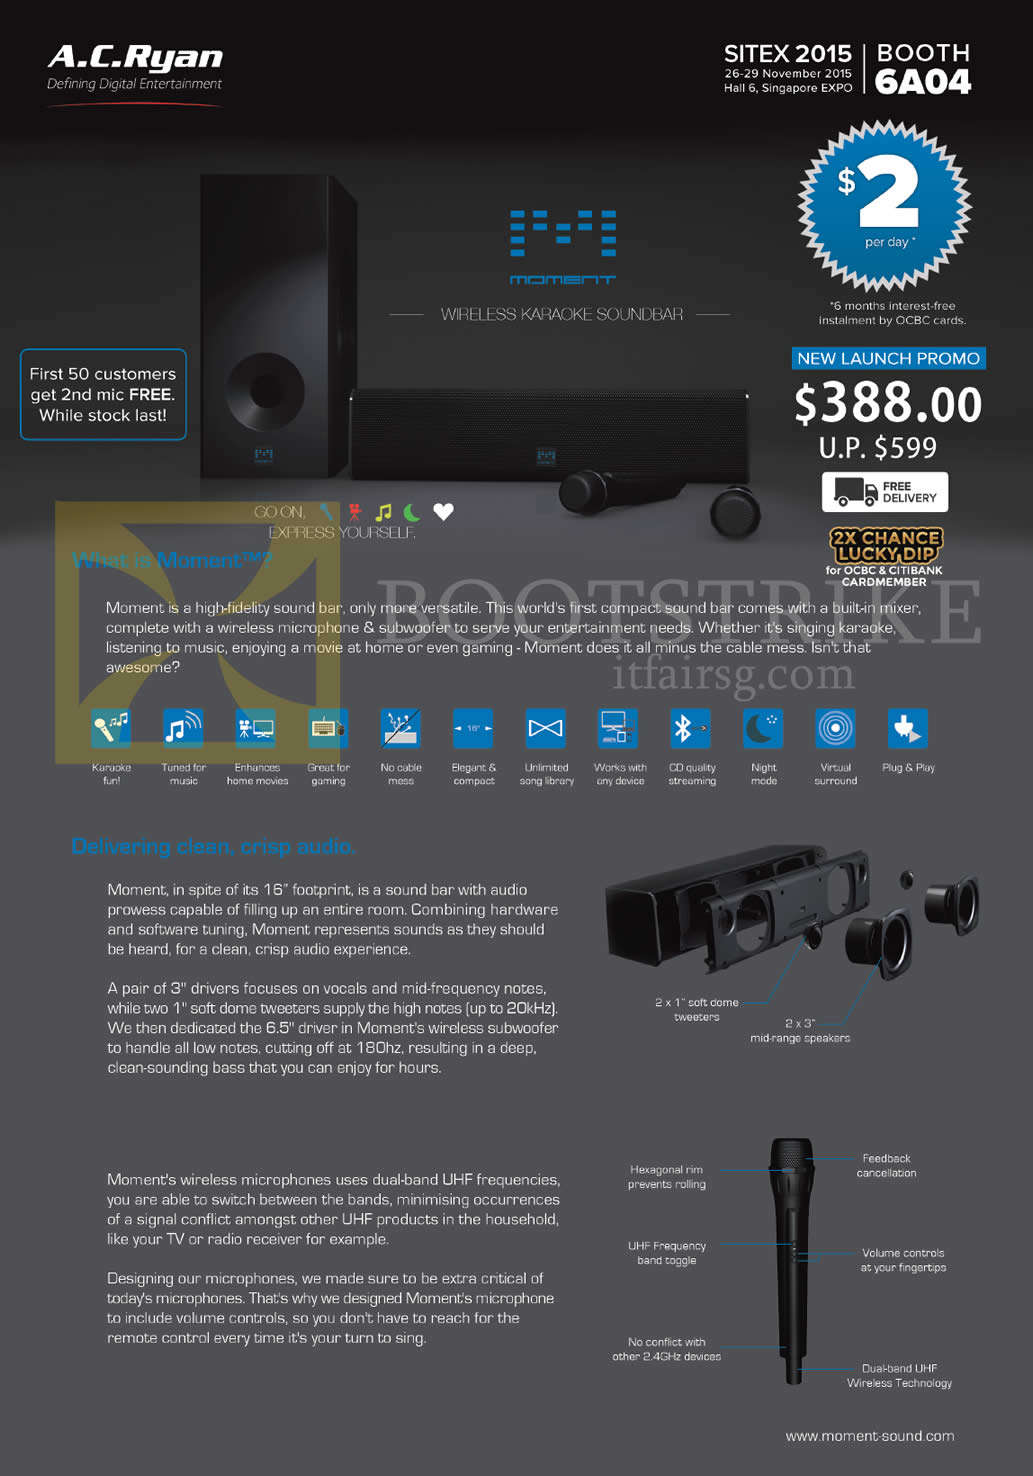 SITEX 2015 price list image brochure of AC Ryan Wireless Karaoke Soundbar